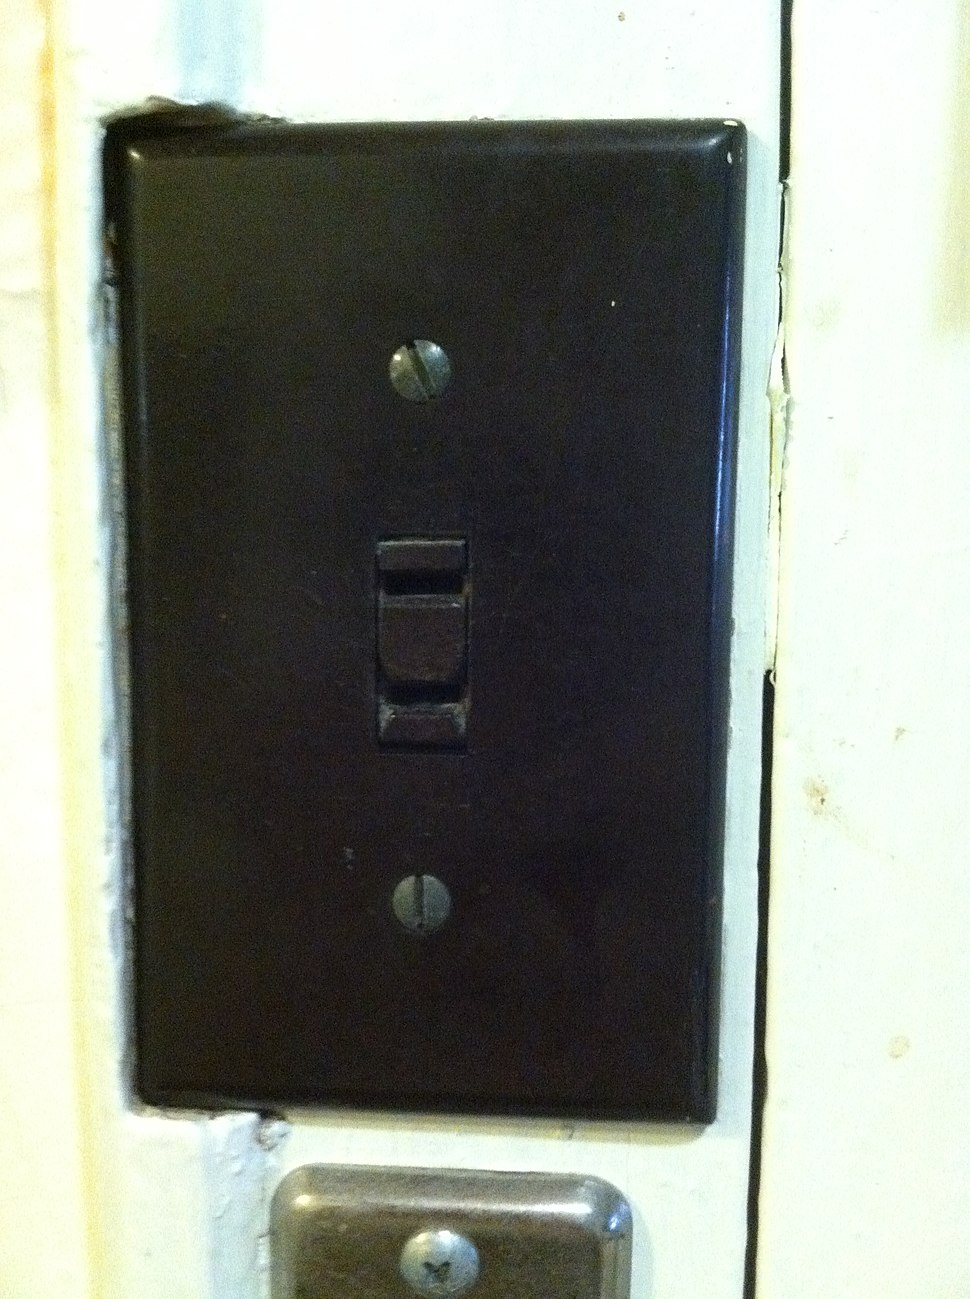 Lightswitch style outlet